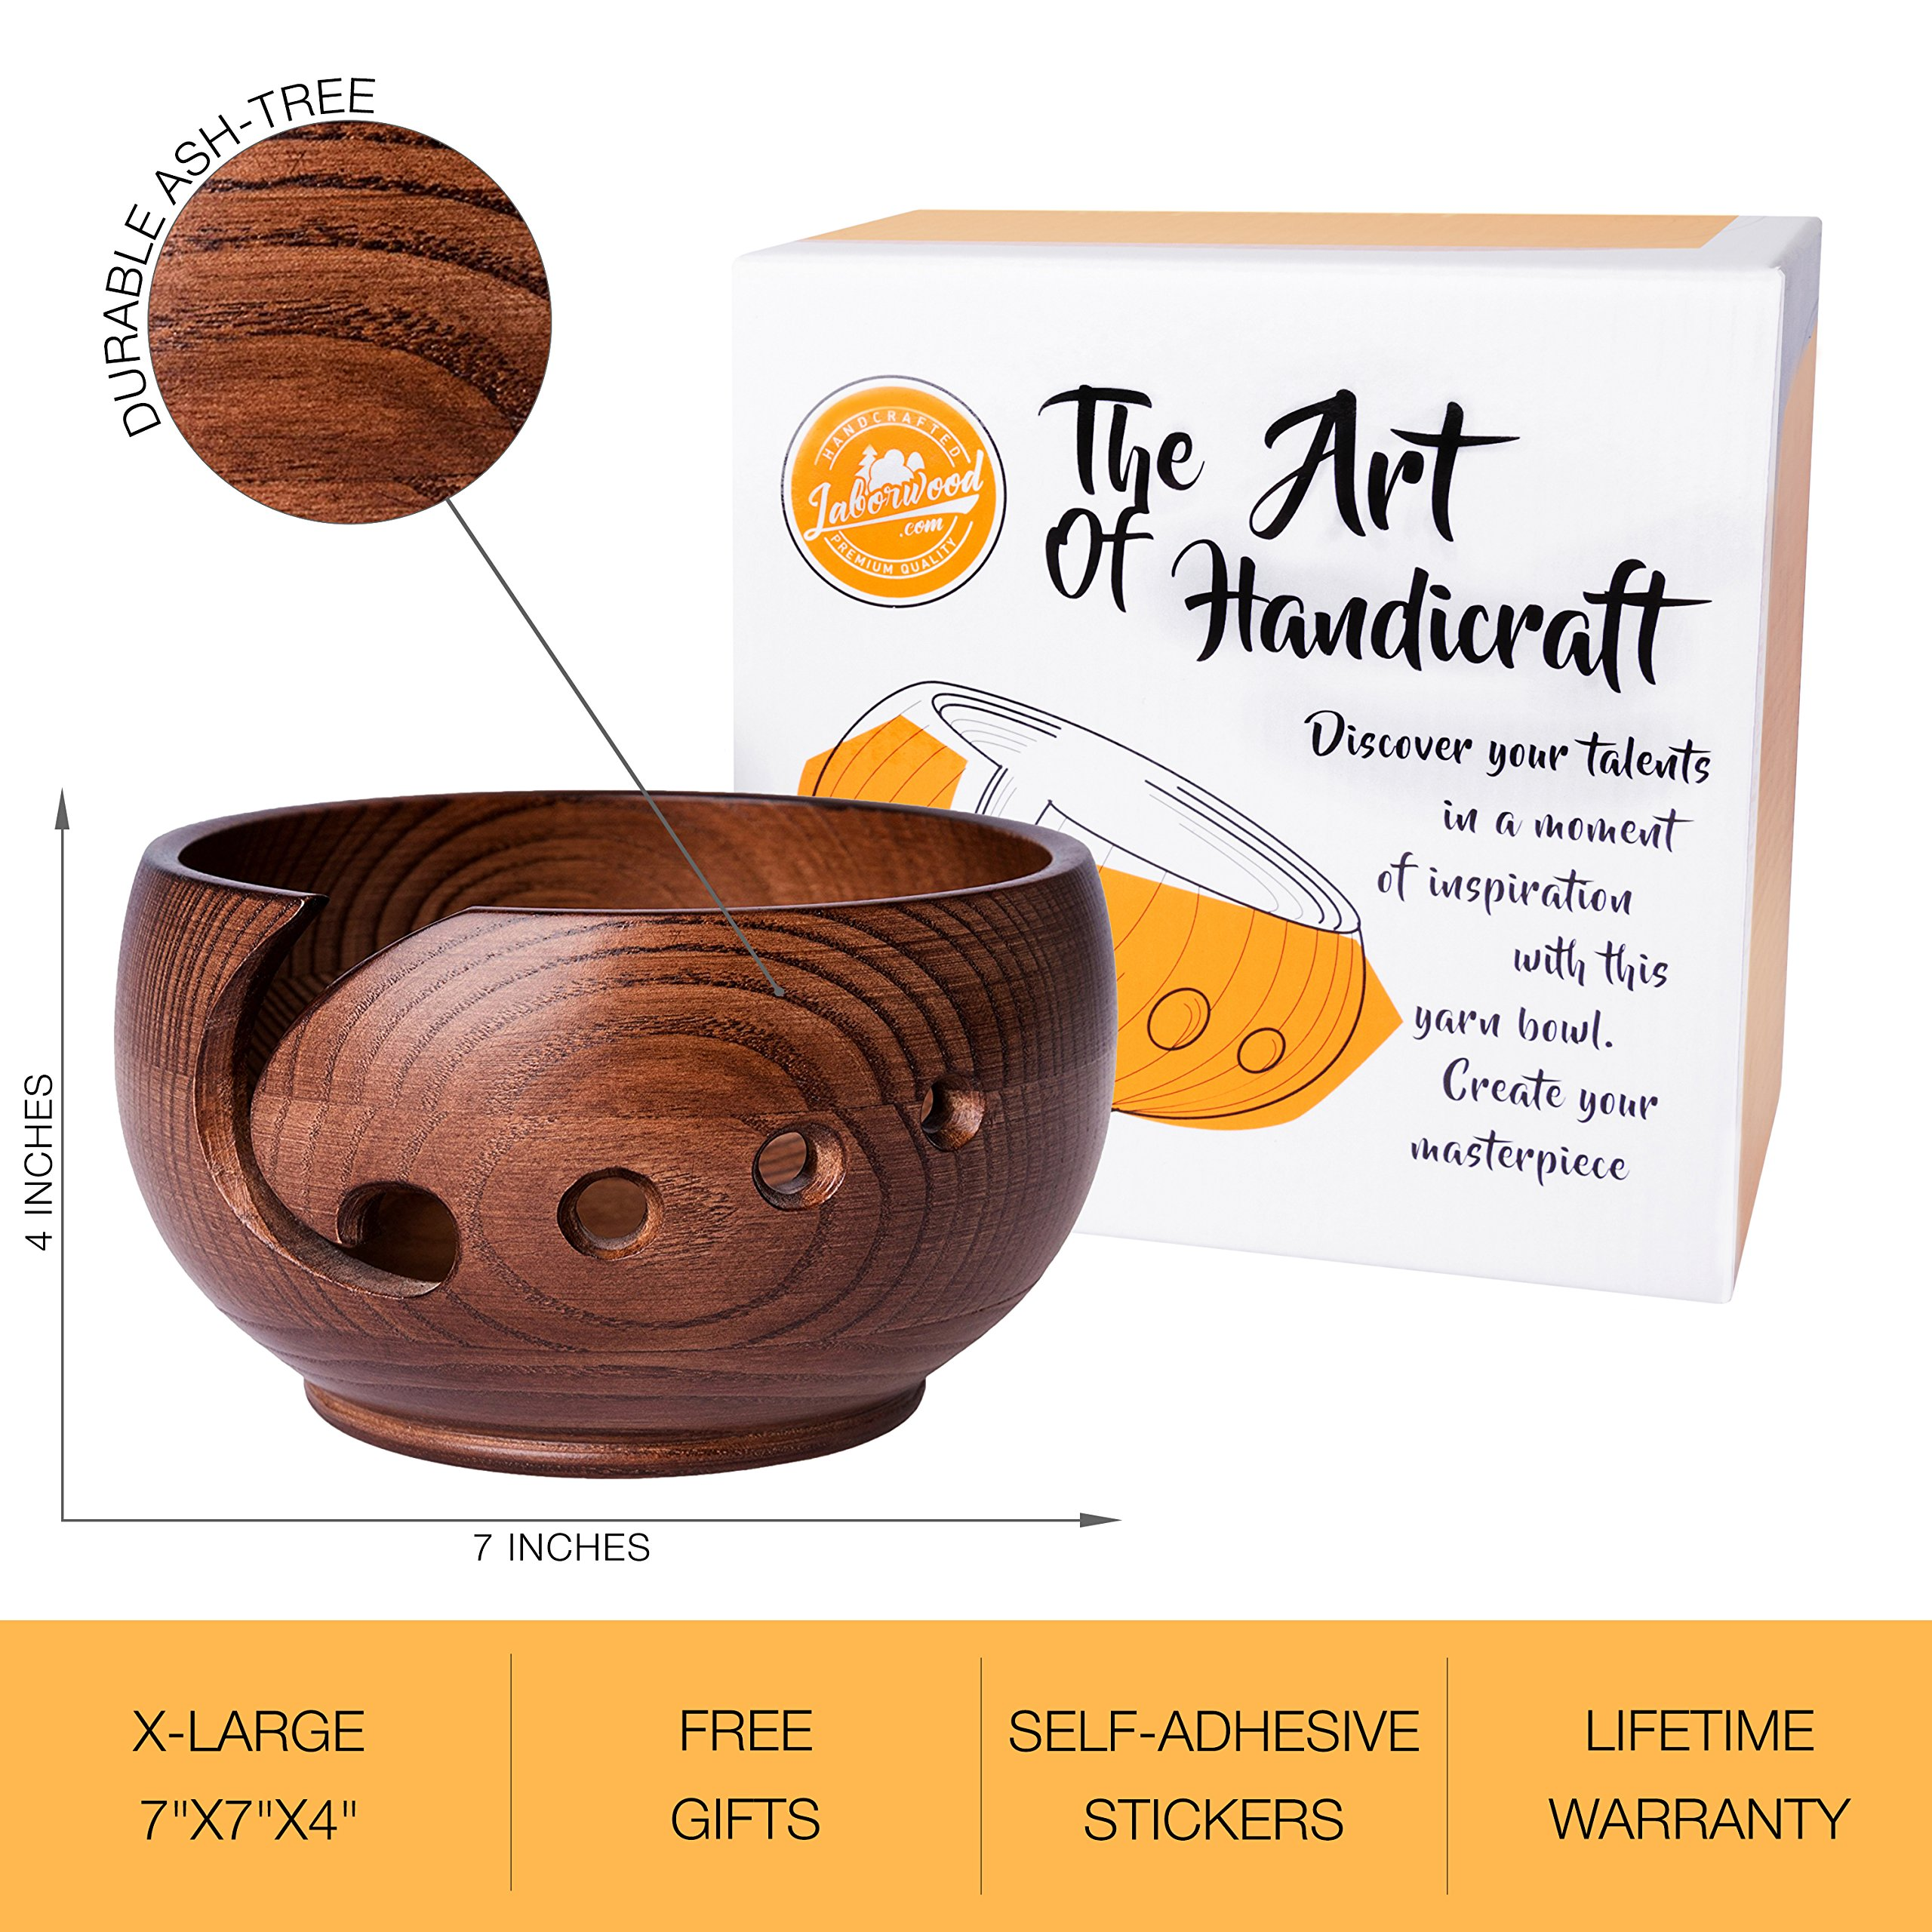 Yarn Bowl for Crochet by Laborwood | Large Size Wooden Knitting Bowl 7''x4'' inch | Handmade Heavy Cat Yarn Bowl Wood | Must Have Wooden Knitting Bowls | Set of 3 Gifts Bonus | Best Gift Ever (Chestnut) by Laborwood (Image #6)